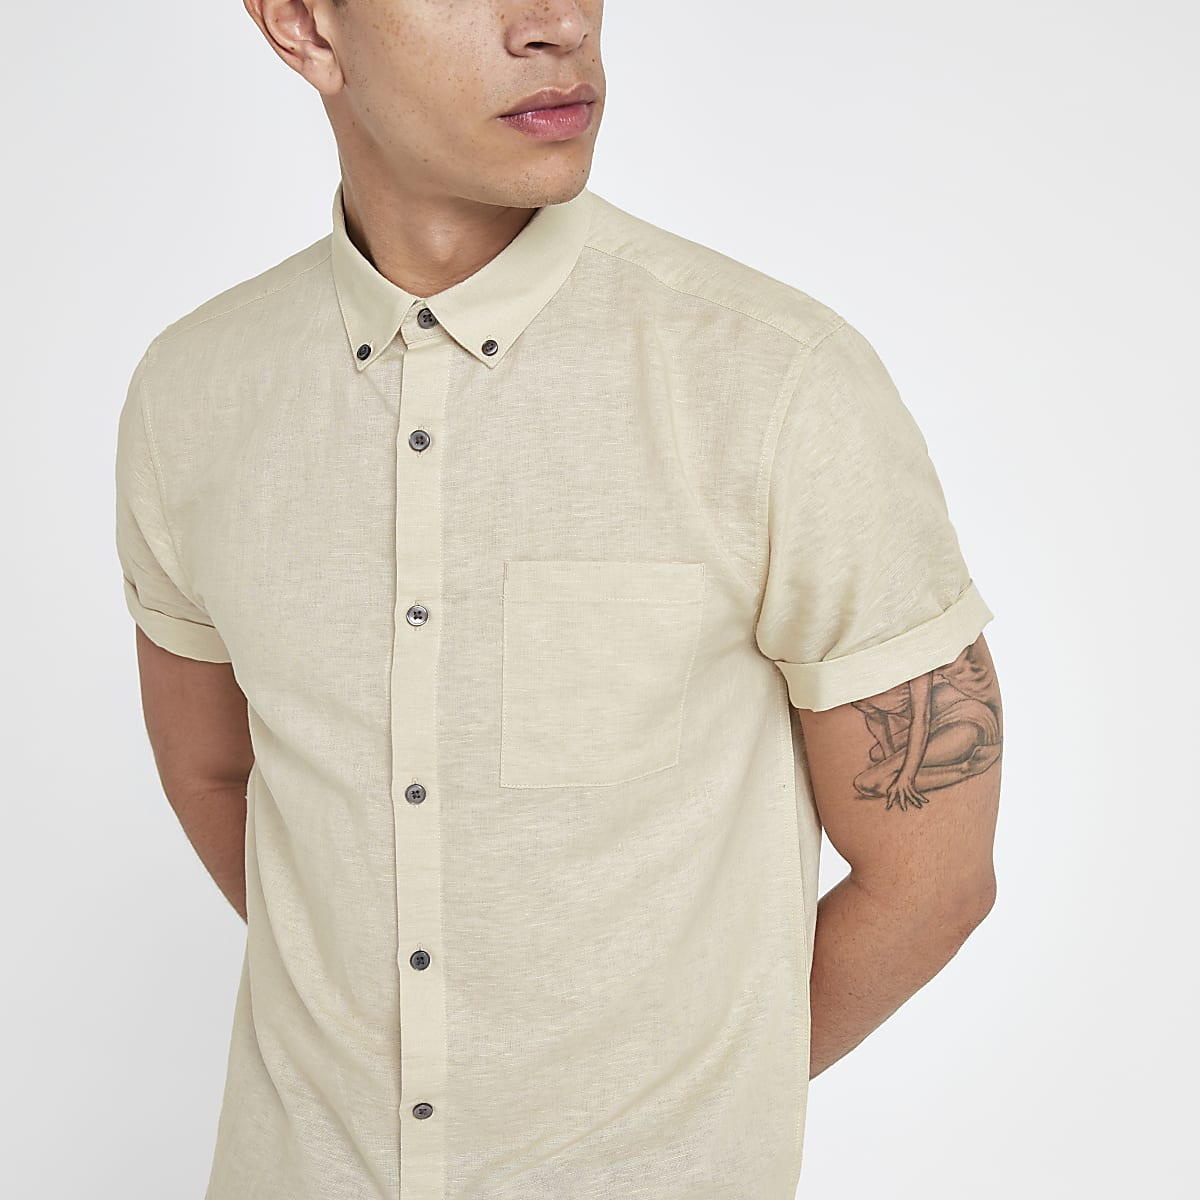 Ecru short sleeve linen blend shirt